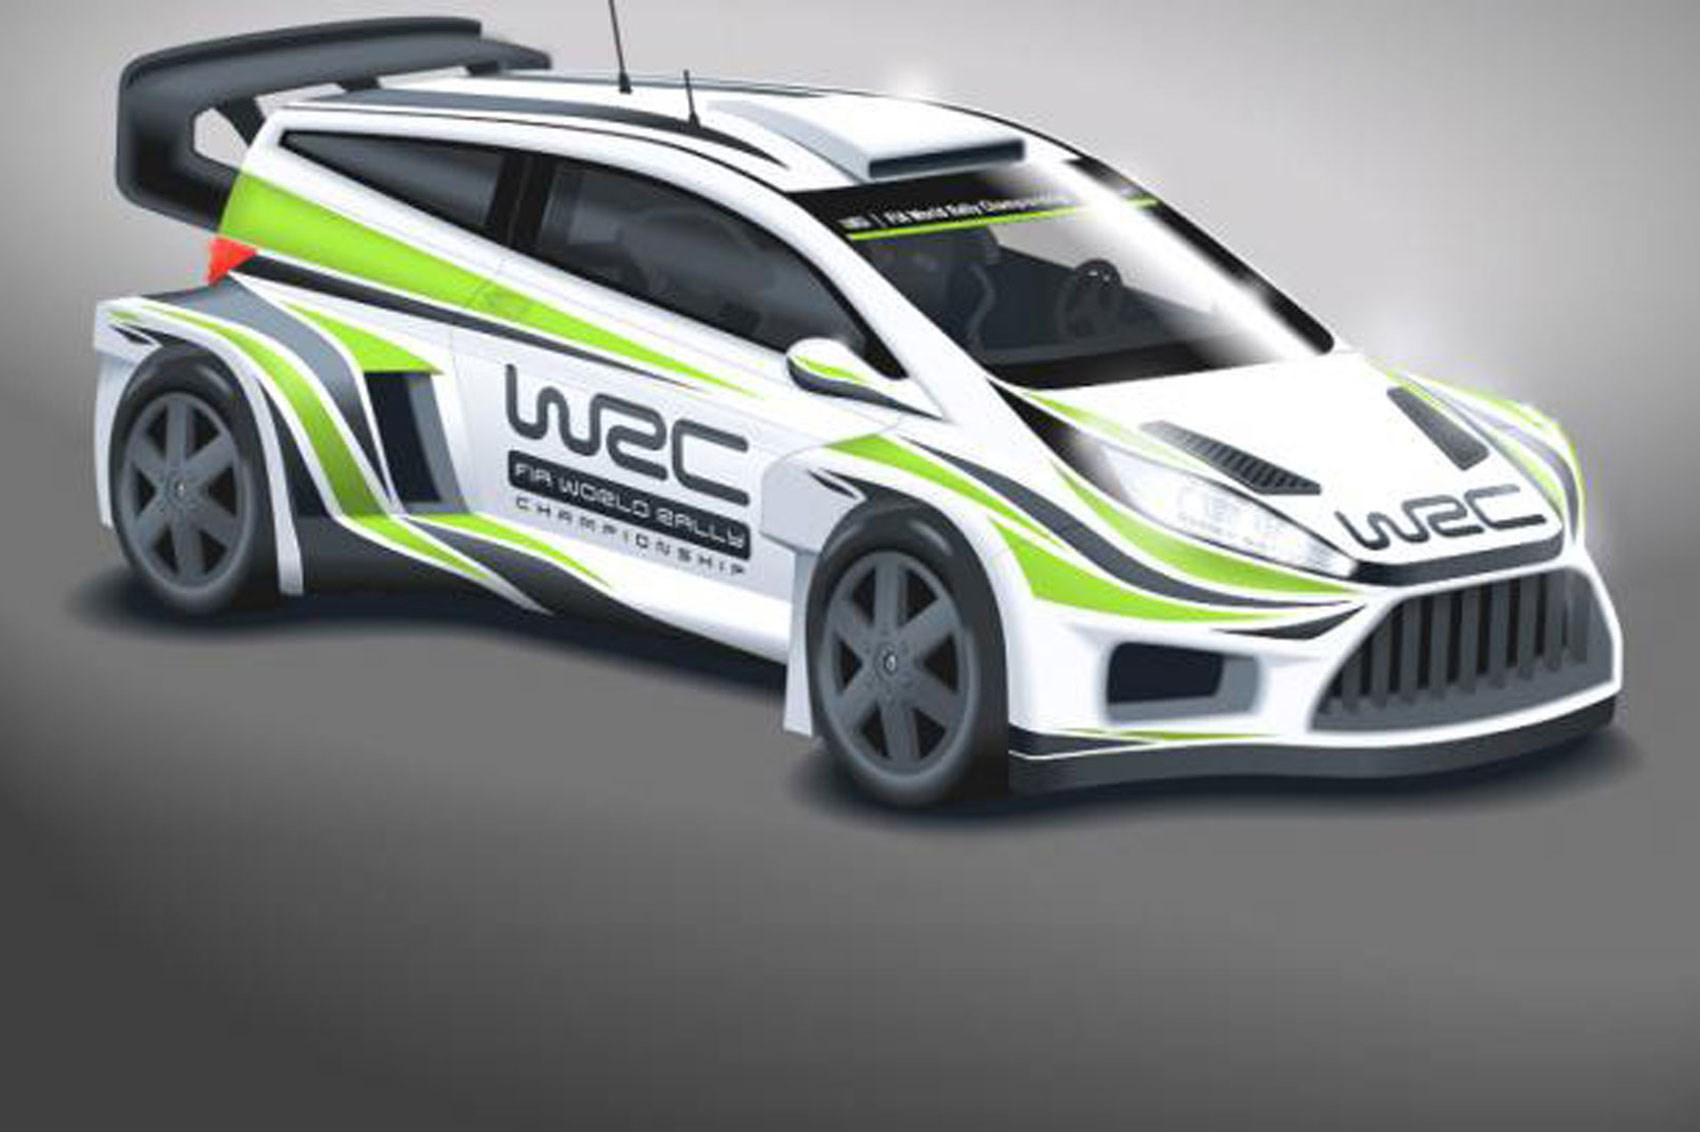 Ultrablogus  Picturesque Wild New Look For Wrc Cars In  By Car Magazine With Heavenly Wrc Cars Will Get Wider Bodies Bigger Wings And More Power For  With Alluring  Ford Pickup Interior Also Silverado Custom Interior In Addition Gold Interior And Freightliner Coronado Interior As Well As Z Interior Parts Additionally Bmw E M Interior From Carmagazinecouk With Ultrablogus  Heavenly Wild New Look For Wrc Cars In  By Car Magazine With Alluring Wrc Cars Will Get Wider Bodies Bigger Wings And More Power For  And Picturesque  Ford Pickup Interior Also Silverado Custom Interior In Addition Gold Interior From Carmagazinecouk